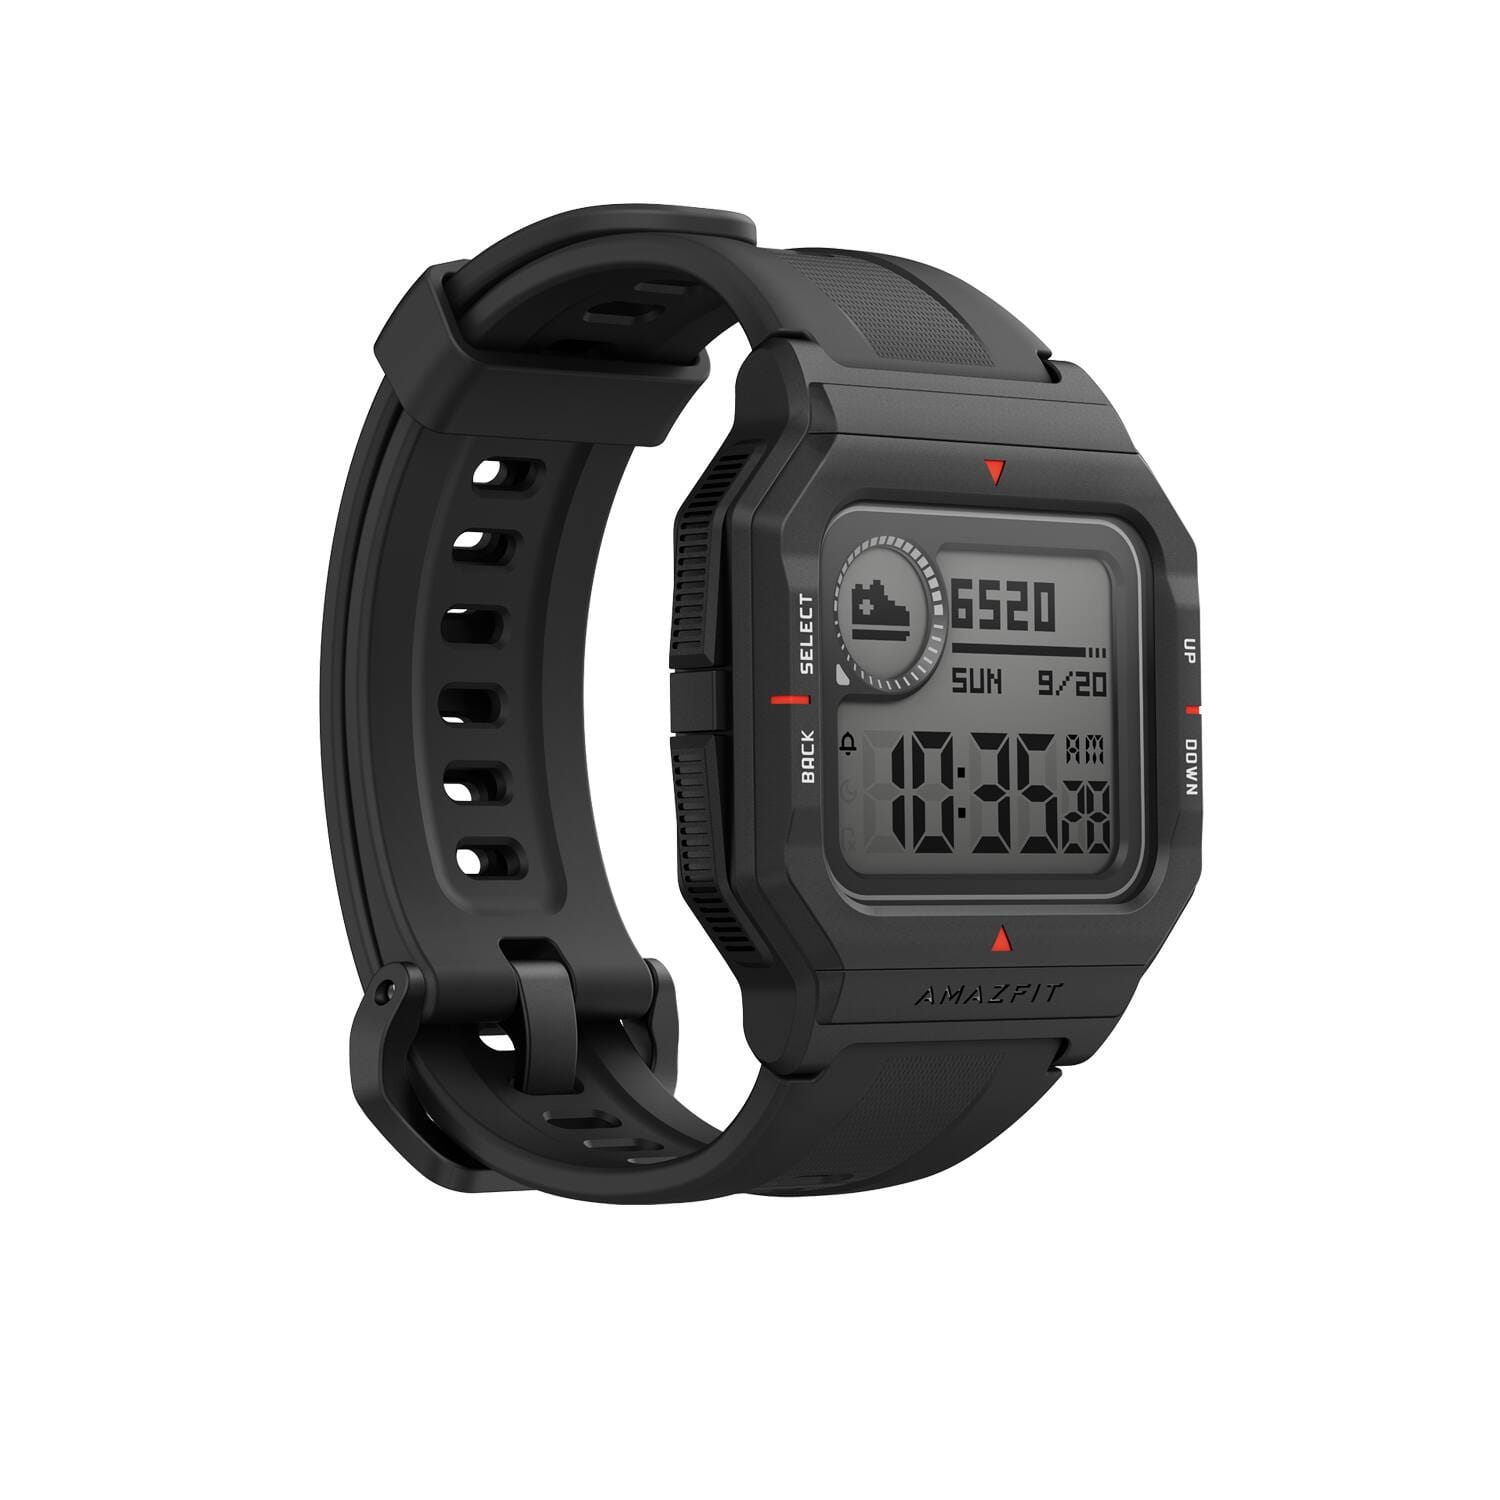 Amazfit Neo Fitness Retro Smartwatch w/Real-Time Workout Tracking, Heart Rate & Sleep Monitoring $34.99 + FS